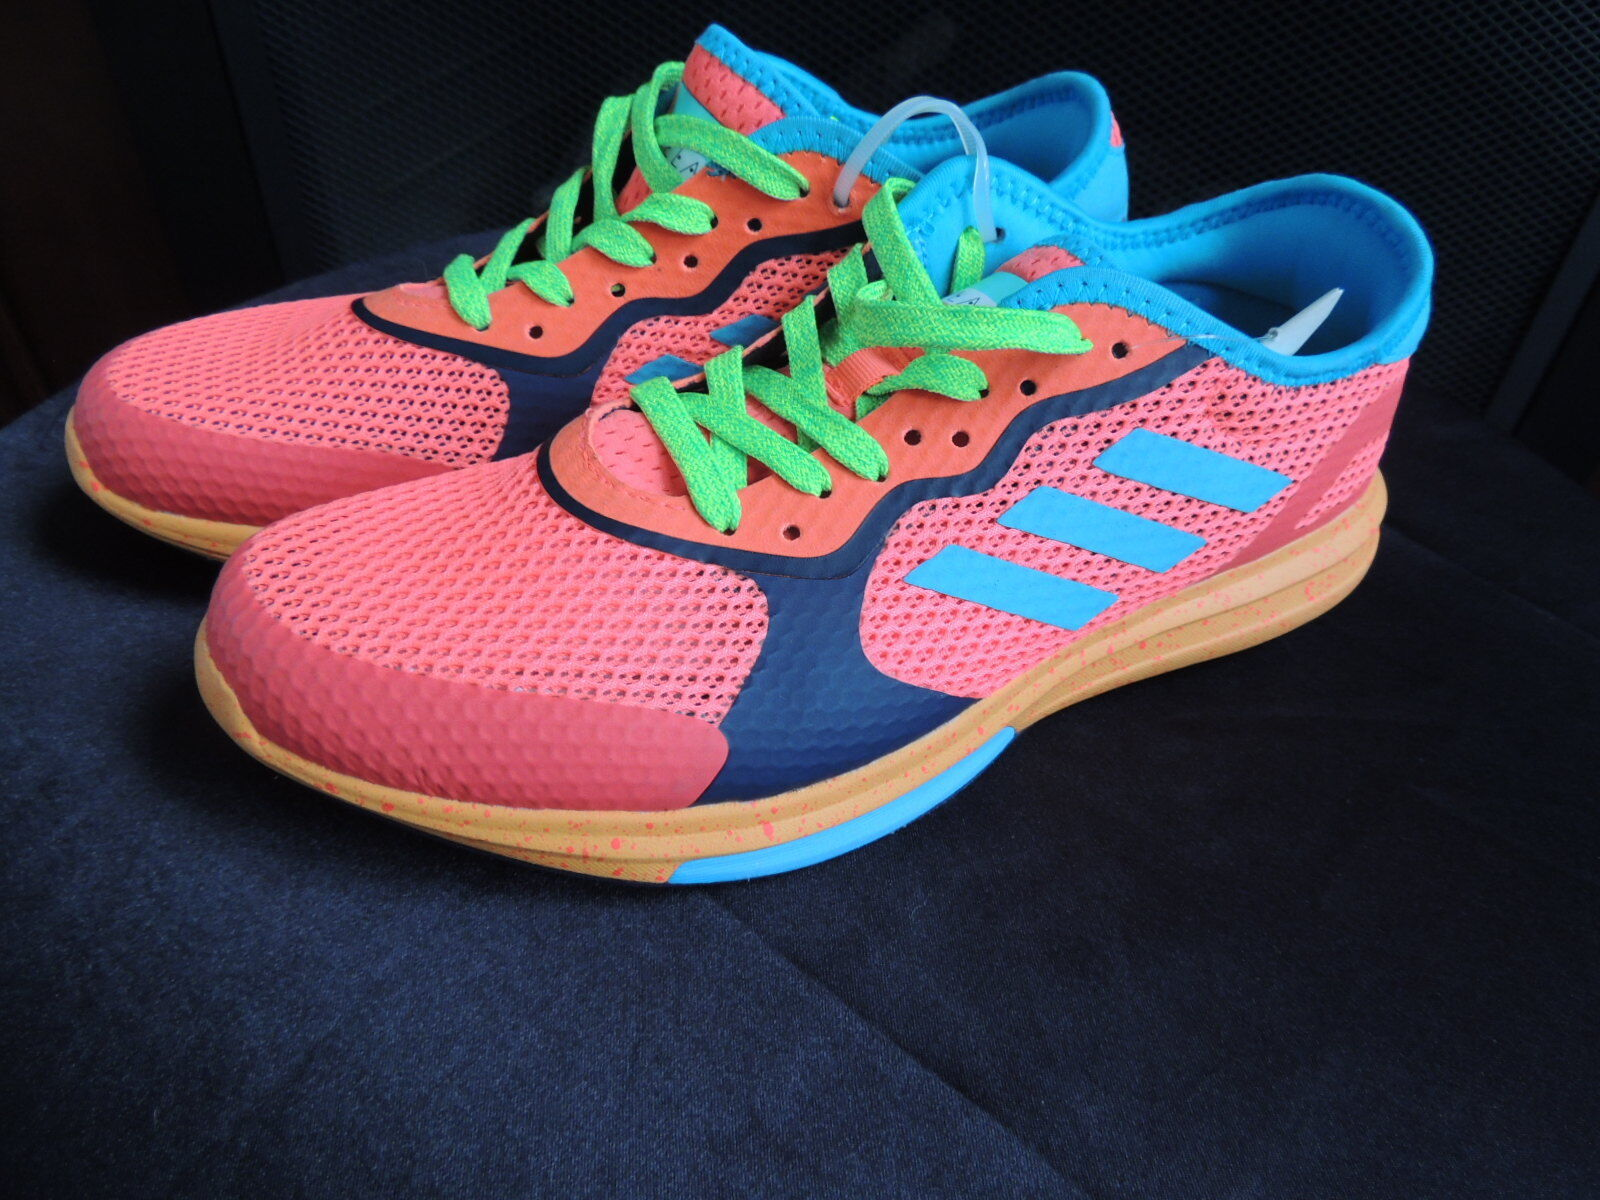 AQ0866 Adidas Swift Run Schuh Frauen Originals